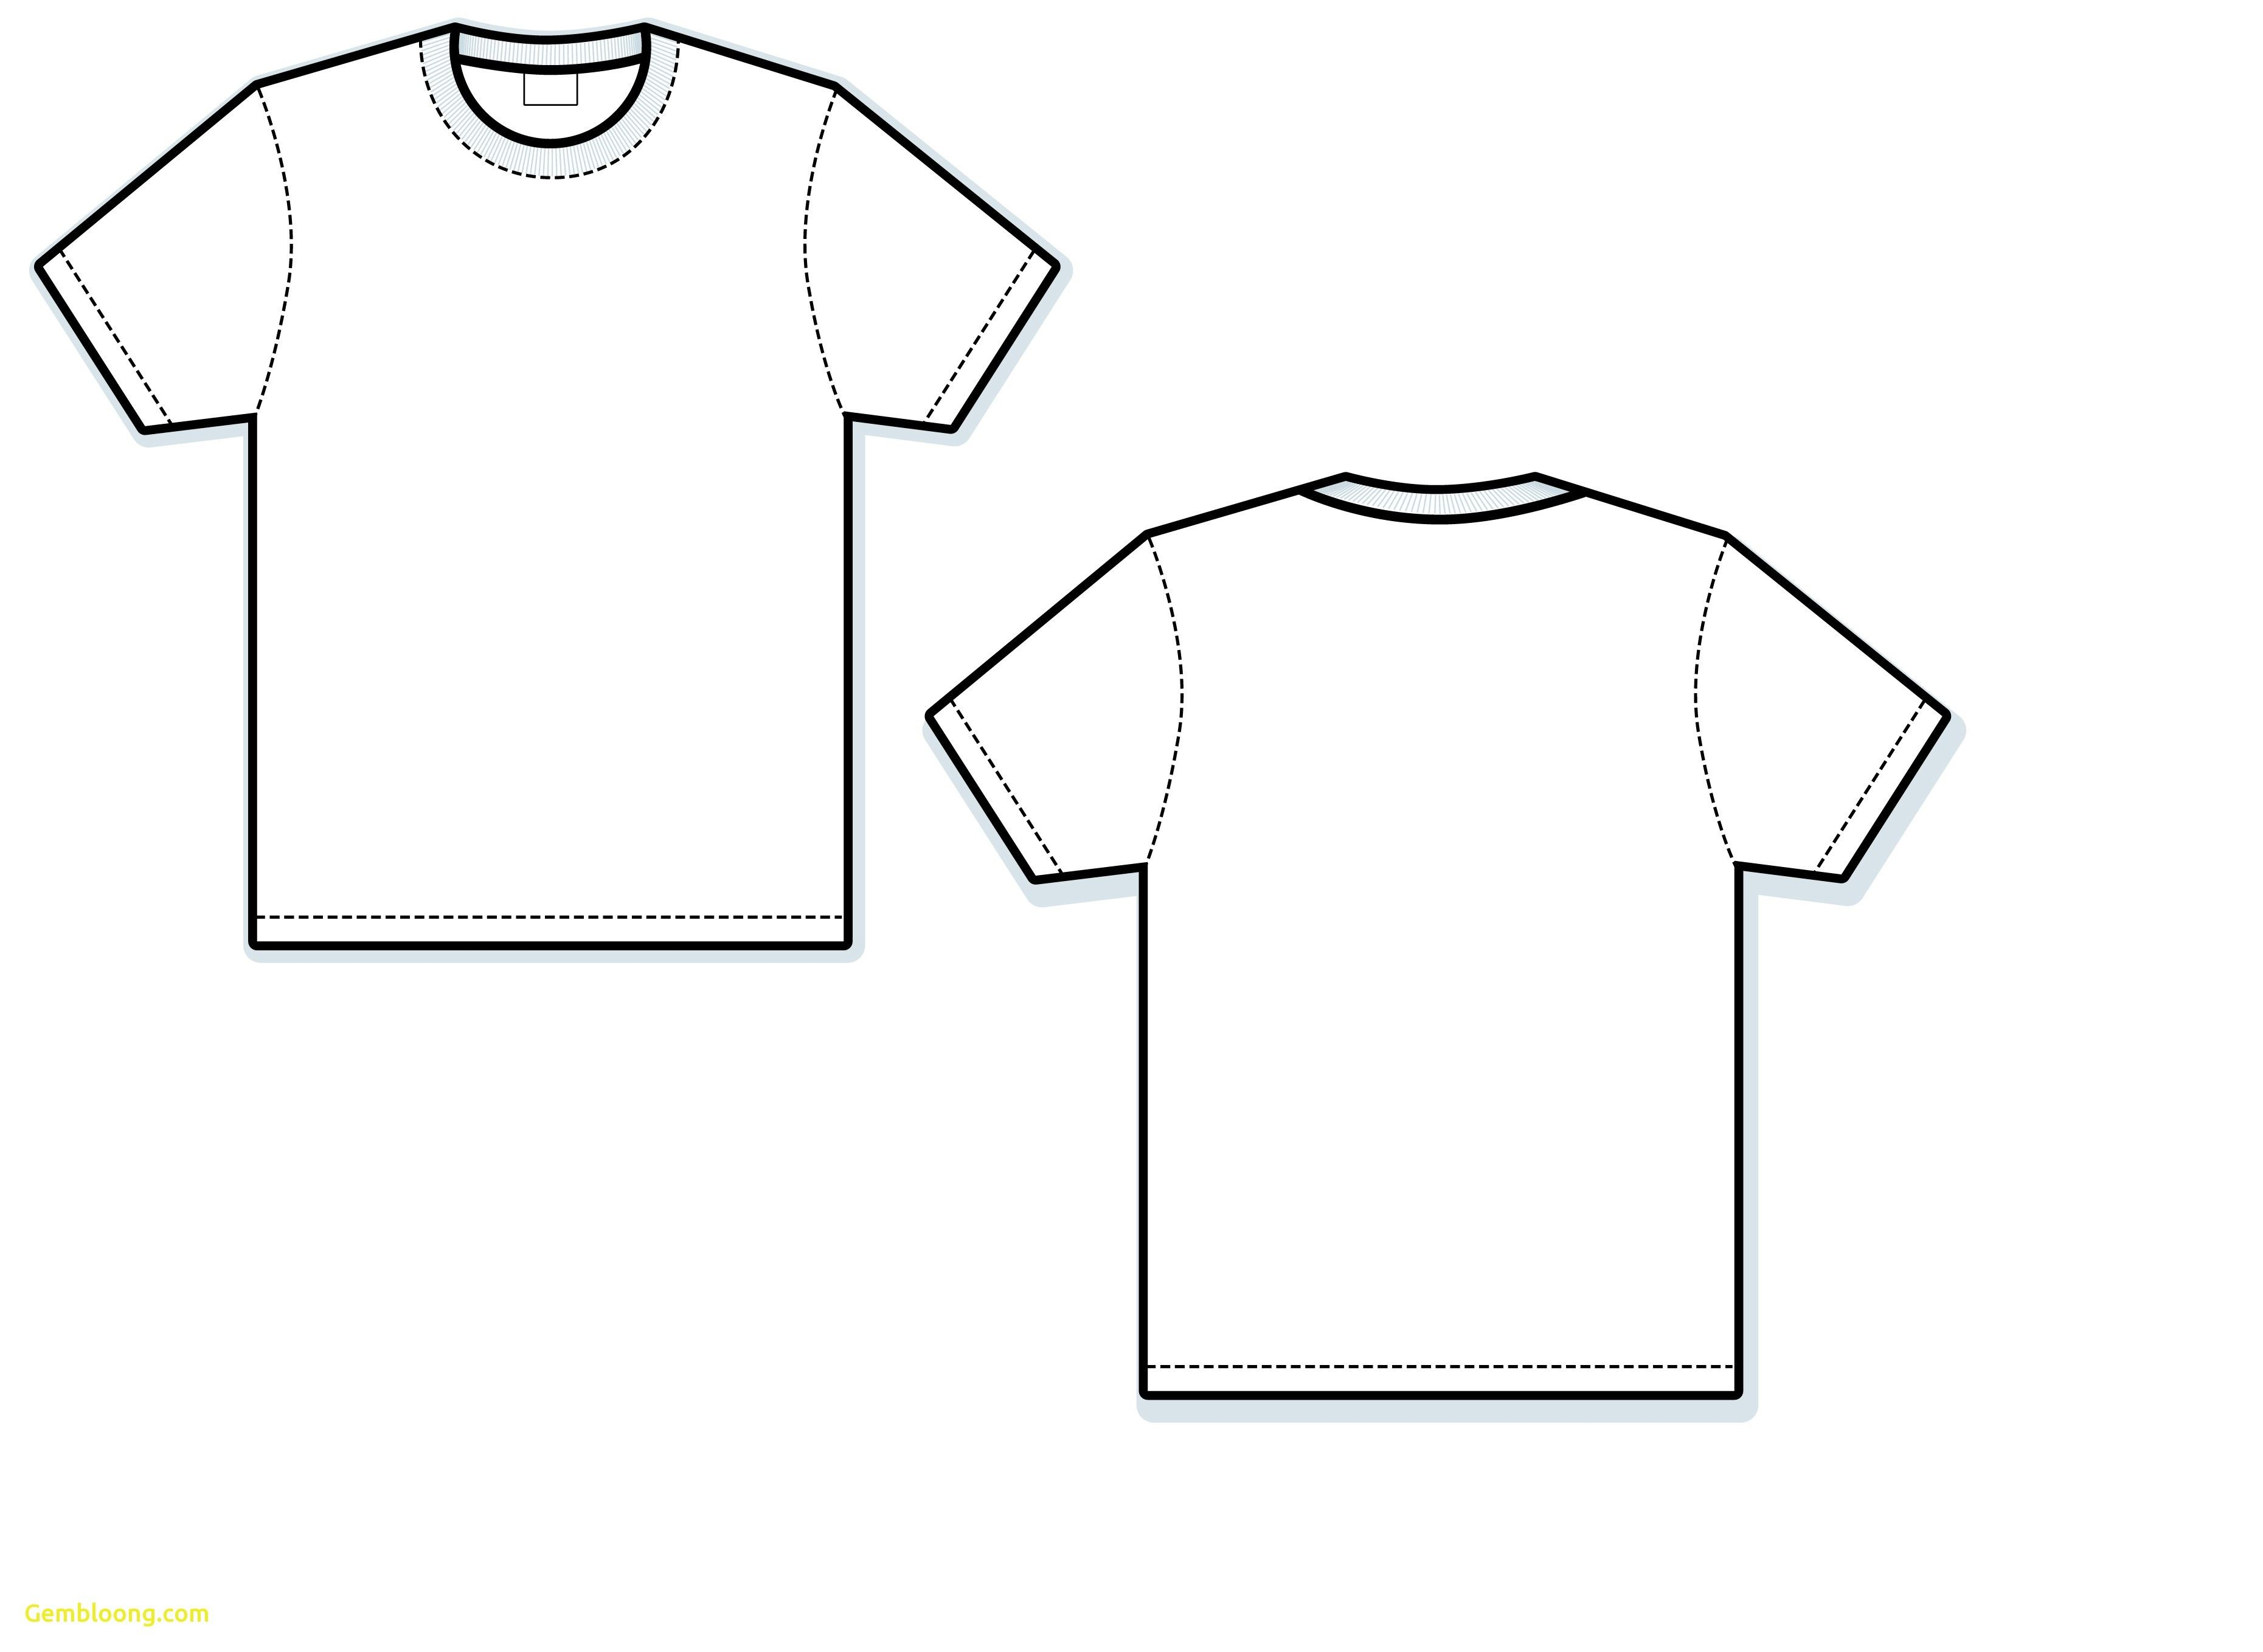 T Shirt Vector Template Awesome Blank T Shirt Free Download Clip Art Free Clip Art On Of T Shirt Vector T T Shirt Design Template Blank T Shirts Shirt Template